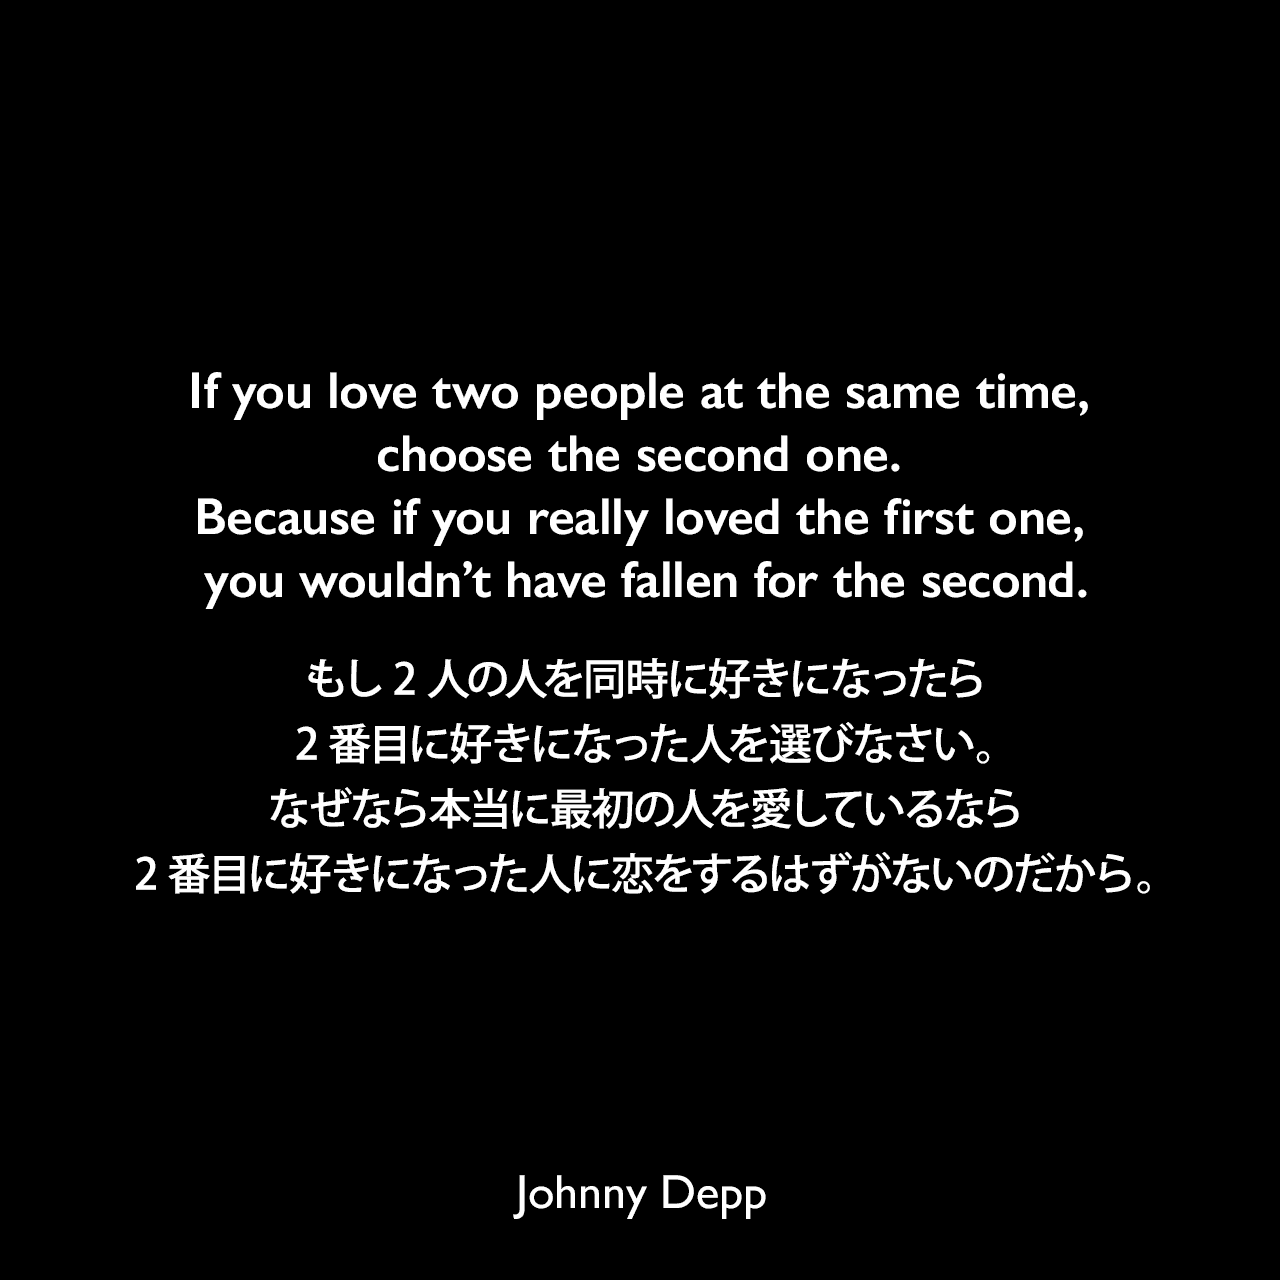 If you love two people at the same time, choose the second one. Because if you really loved the first one, you wouldn't have fallen for the second.もし2人の人を同時に好きになったら、2番目に好きになった人を選びなさい。なぜなら本当に最初の人を愛しているなら、2番目に好きになった人に恋をするはずがないのだから。Johnny Depp